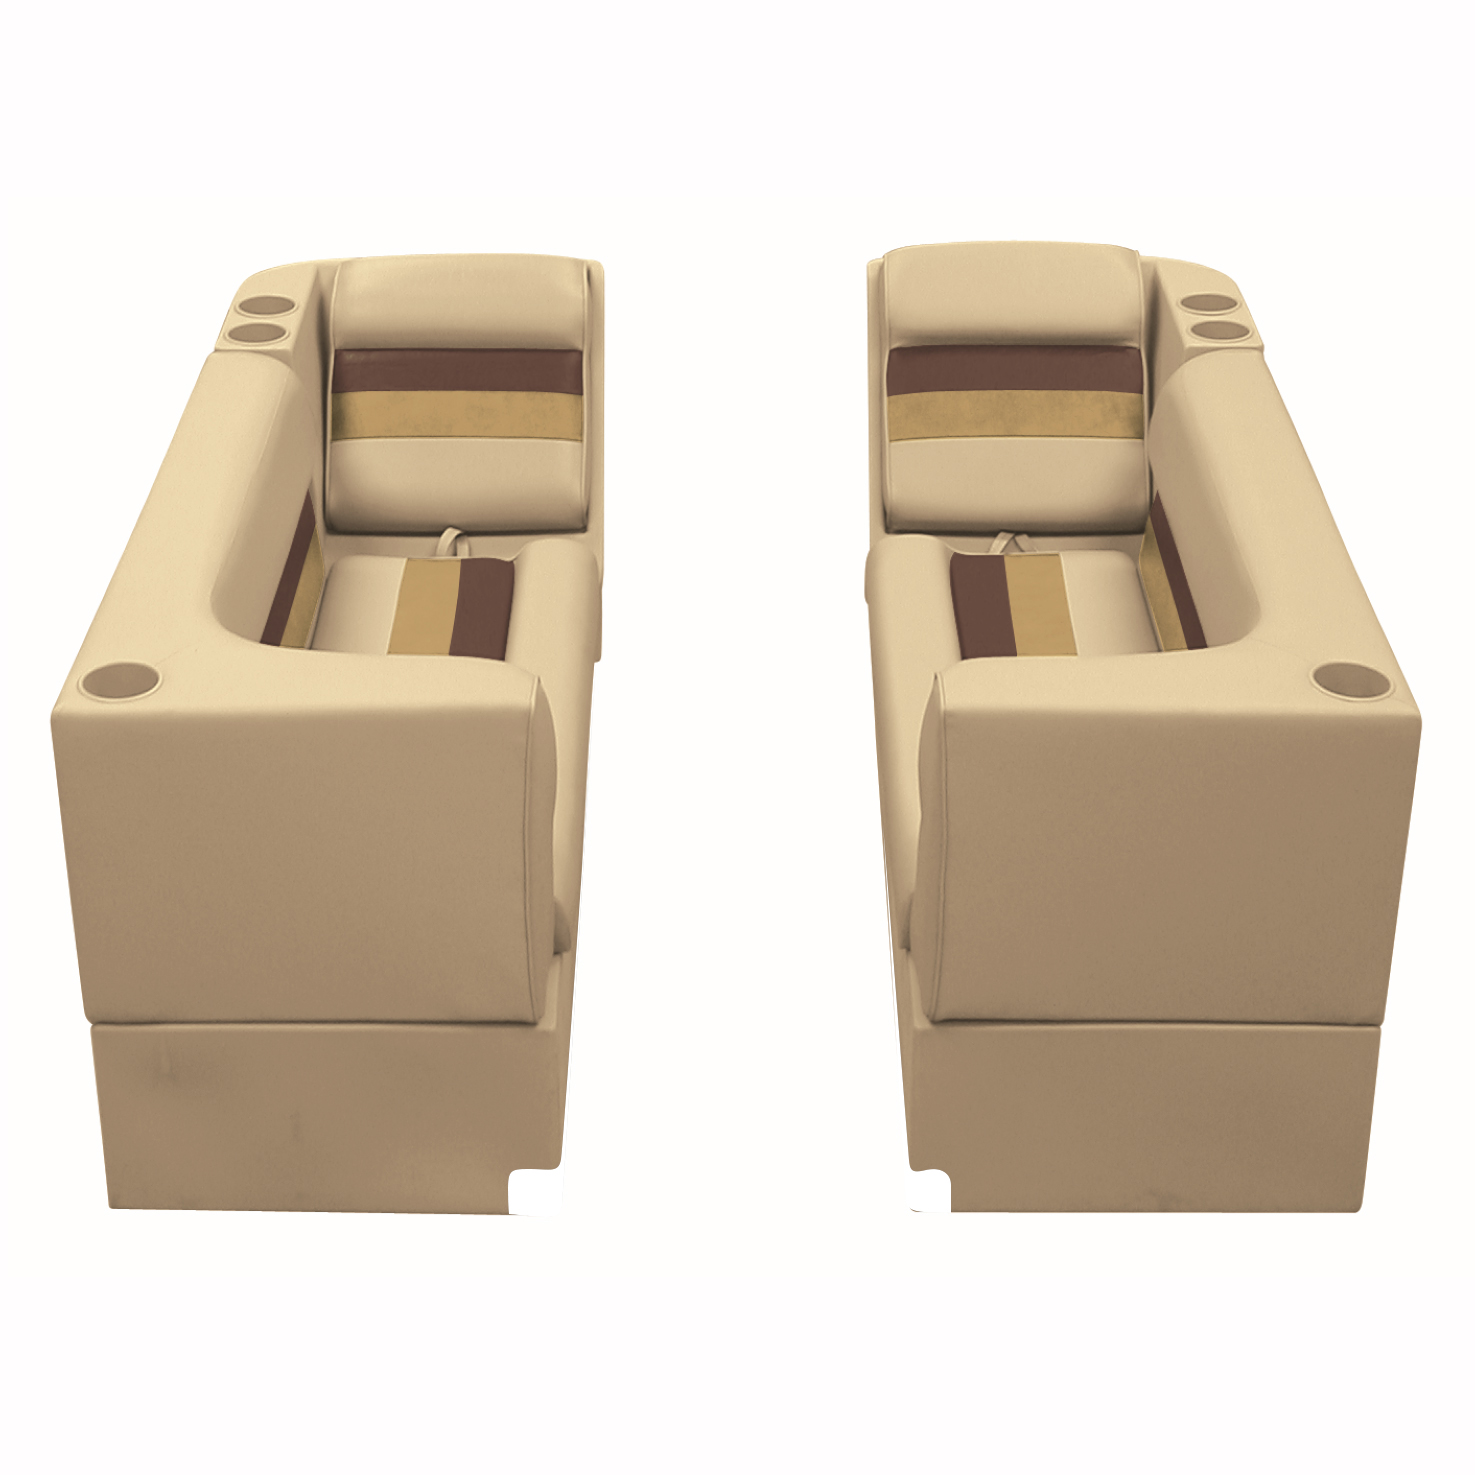 Deluxe Pontoon Furniture w/Toe Kick Base - Front Group Package B, Sand/Ches/Gold